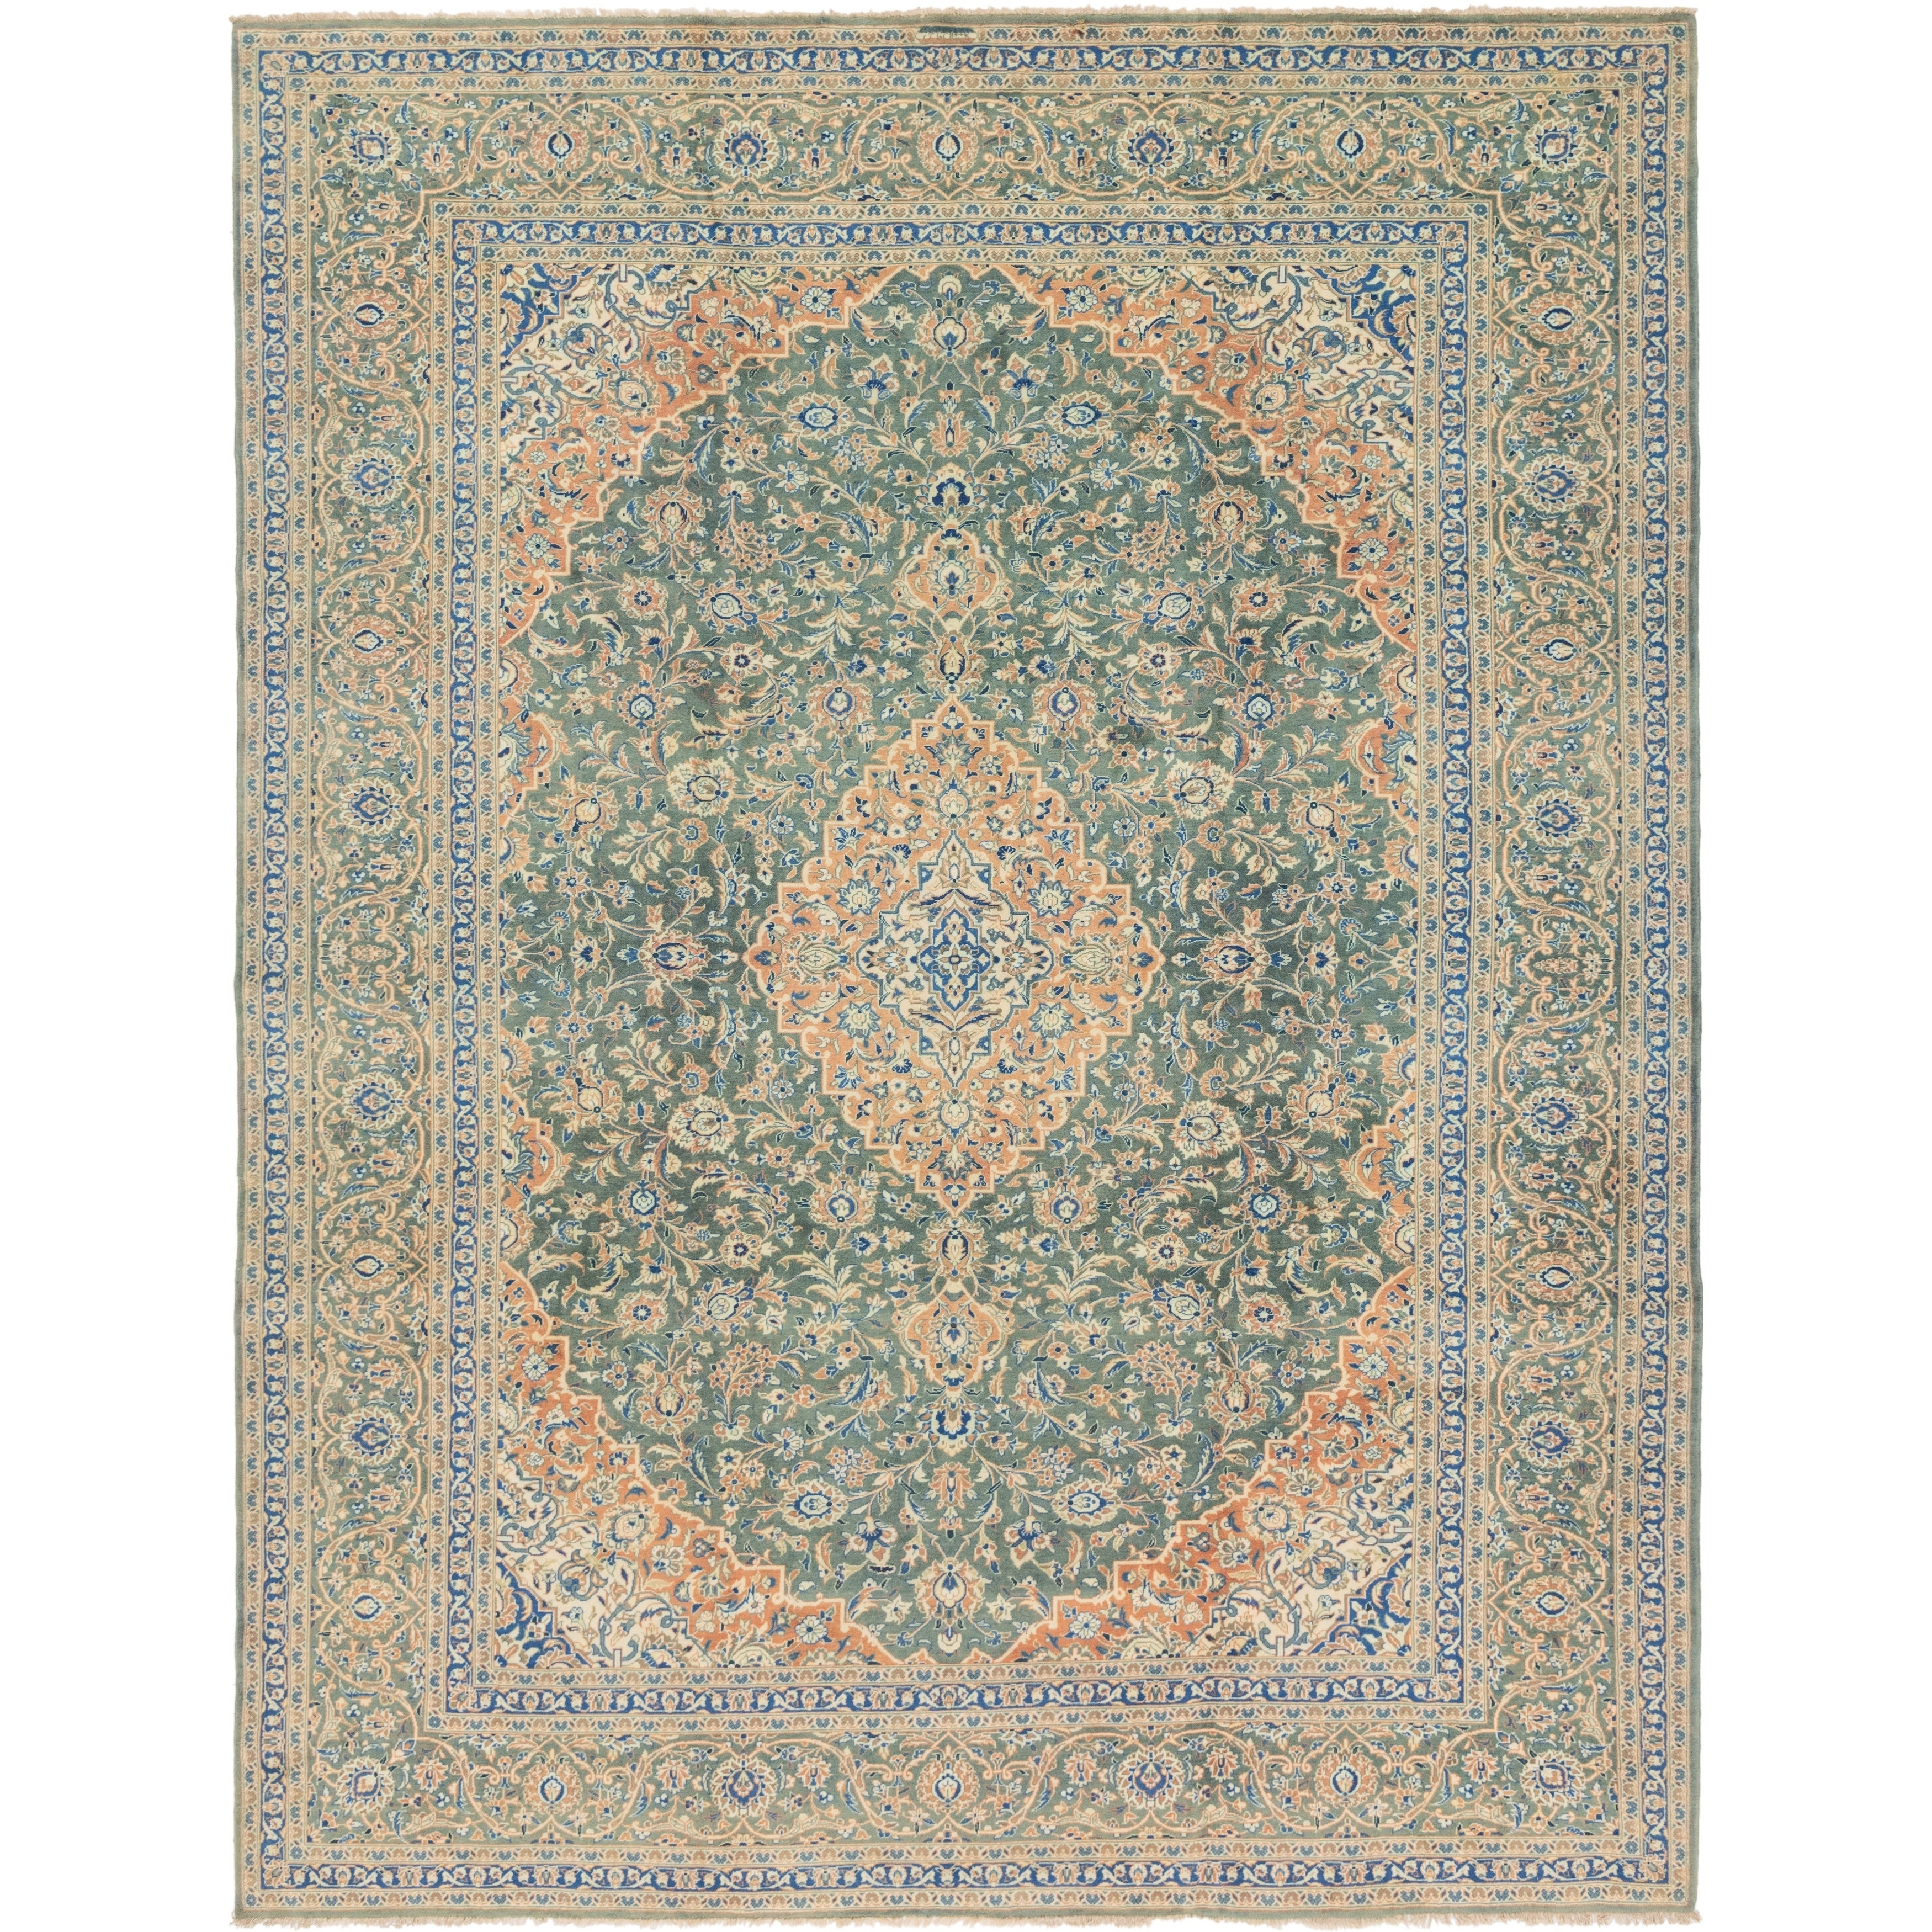 Hand Knotted Kashan Semi Antique Wool Area Rug - 10 4 x 13 4 (Green - 10 4 x 13 4)